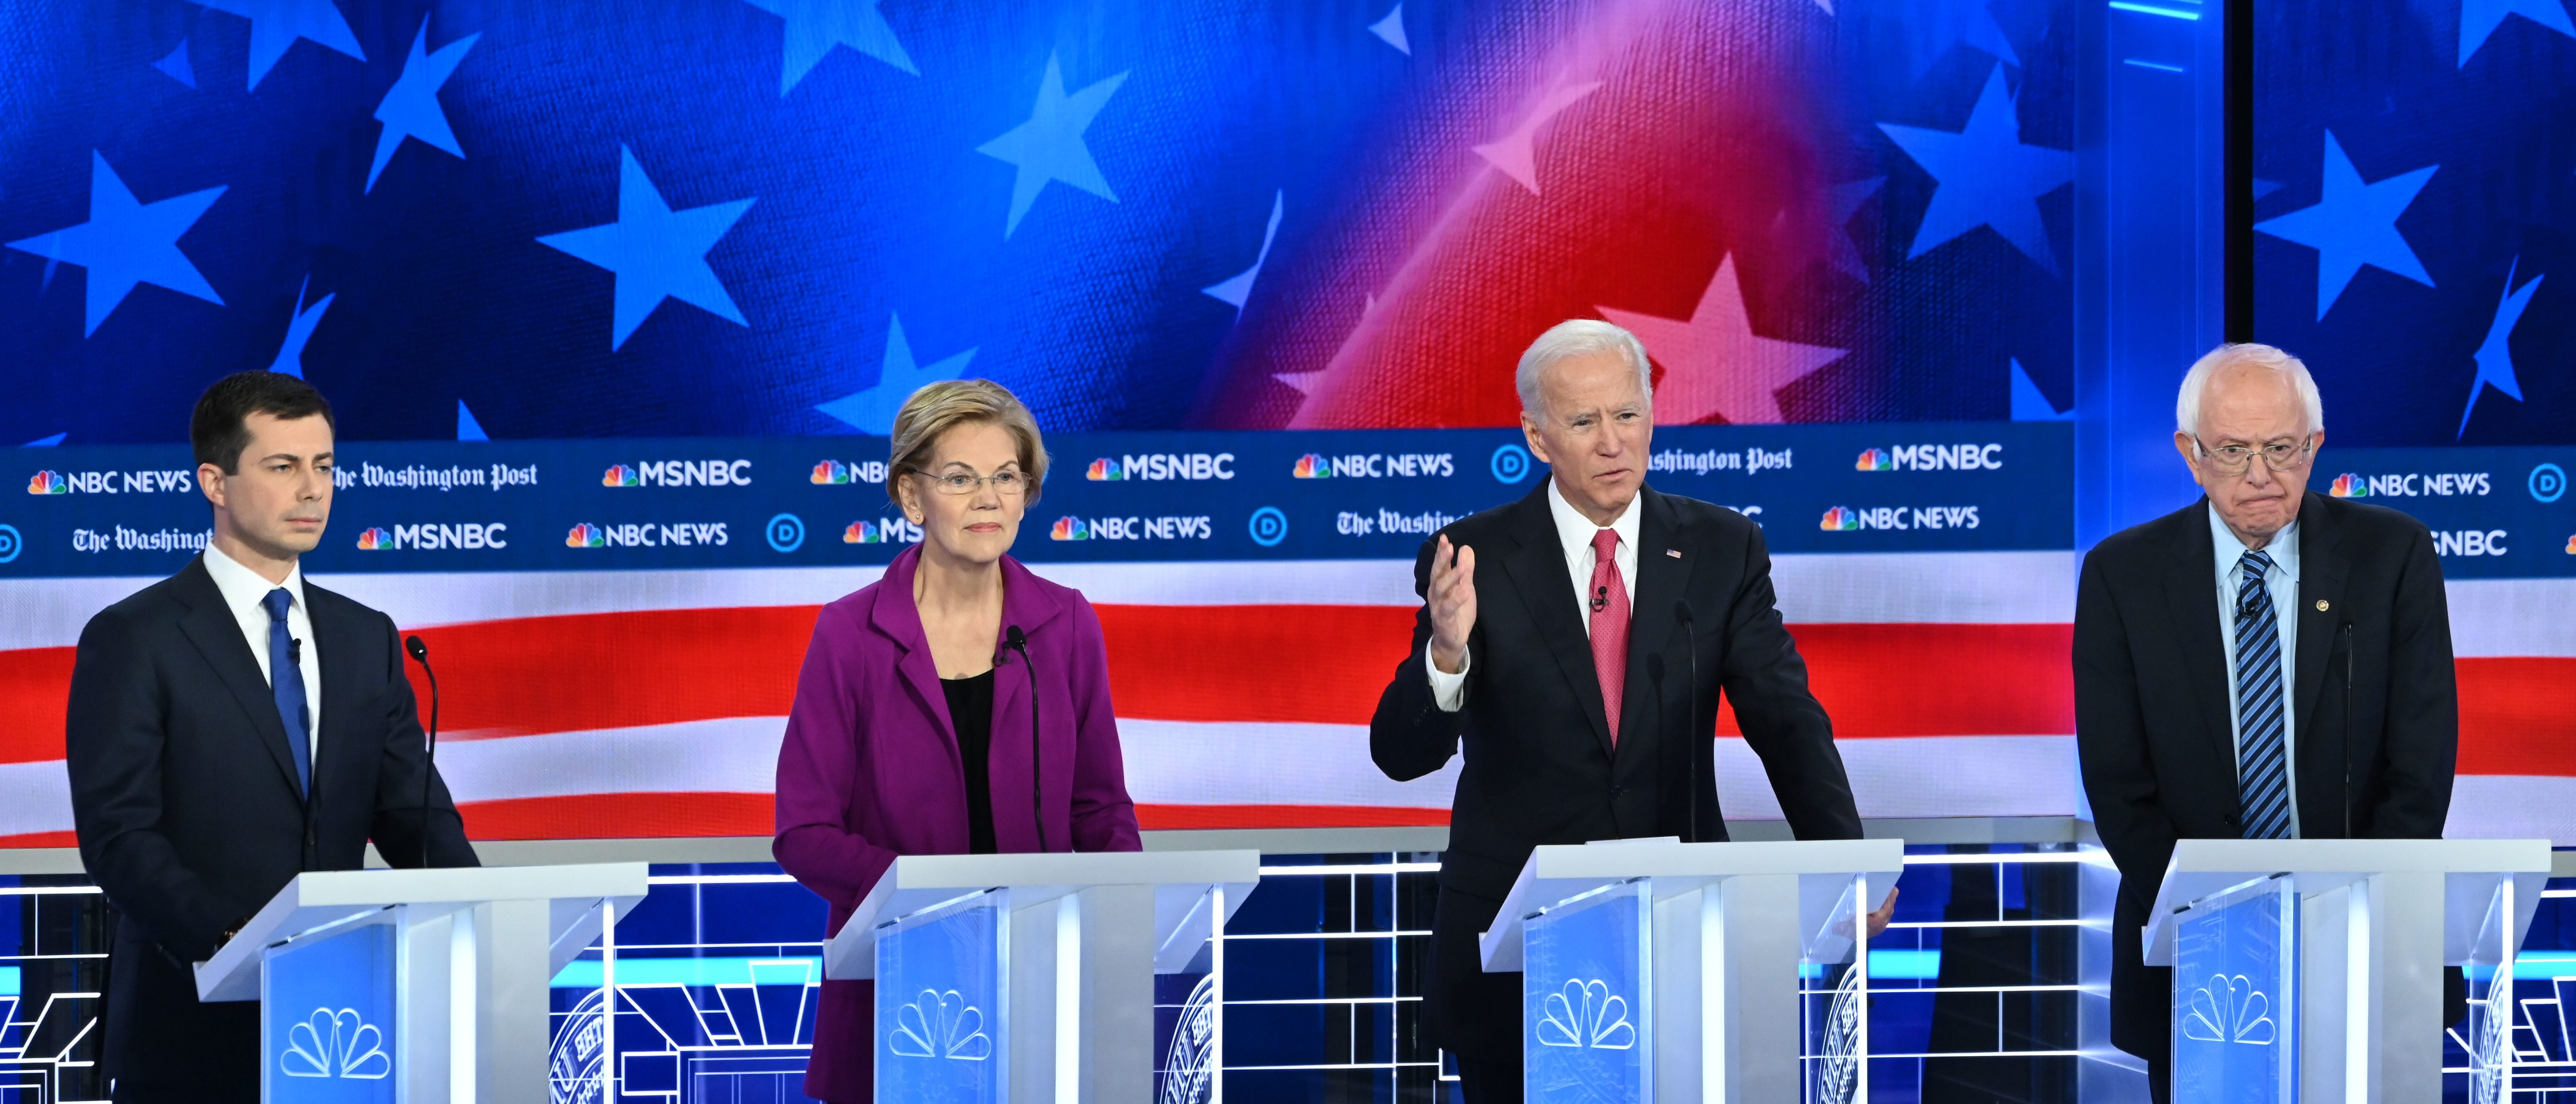 Democratic presidential hopefuls (L-R) Mayor of South Bend, Indiana, Pete Buttigieg, Massachusetts Senator Elizabeth Warren, Former Vice President Joe Biden and Vermont Senator Bernie Sanders speak during the fifth Democratic primary debate of the 2020 presidential campaign season. (SAUL LOEB/AFP via Getty Images)